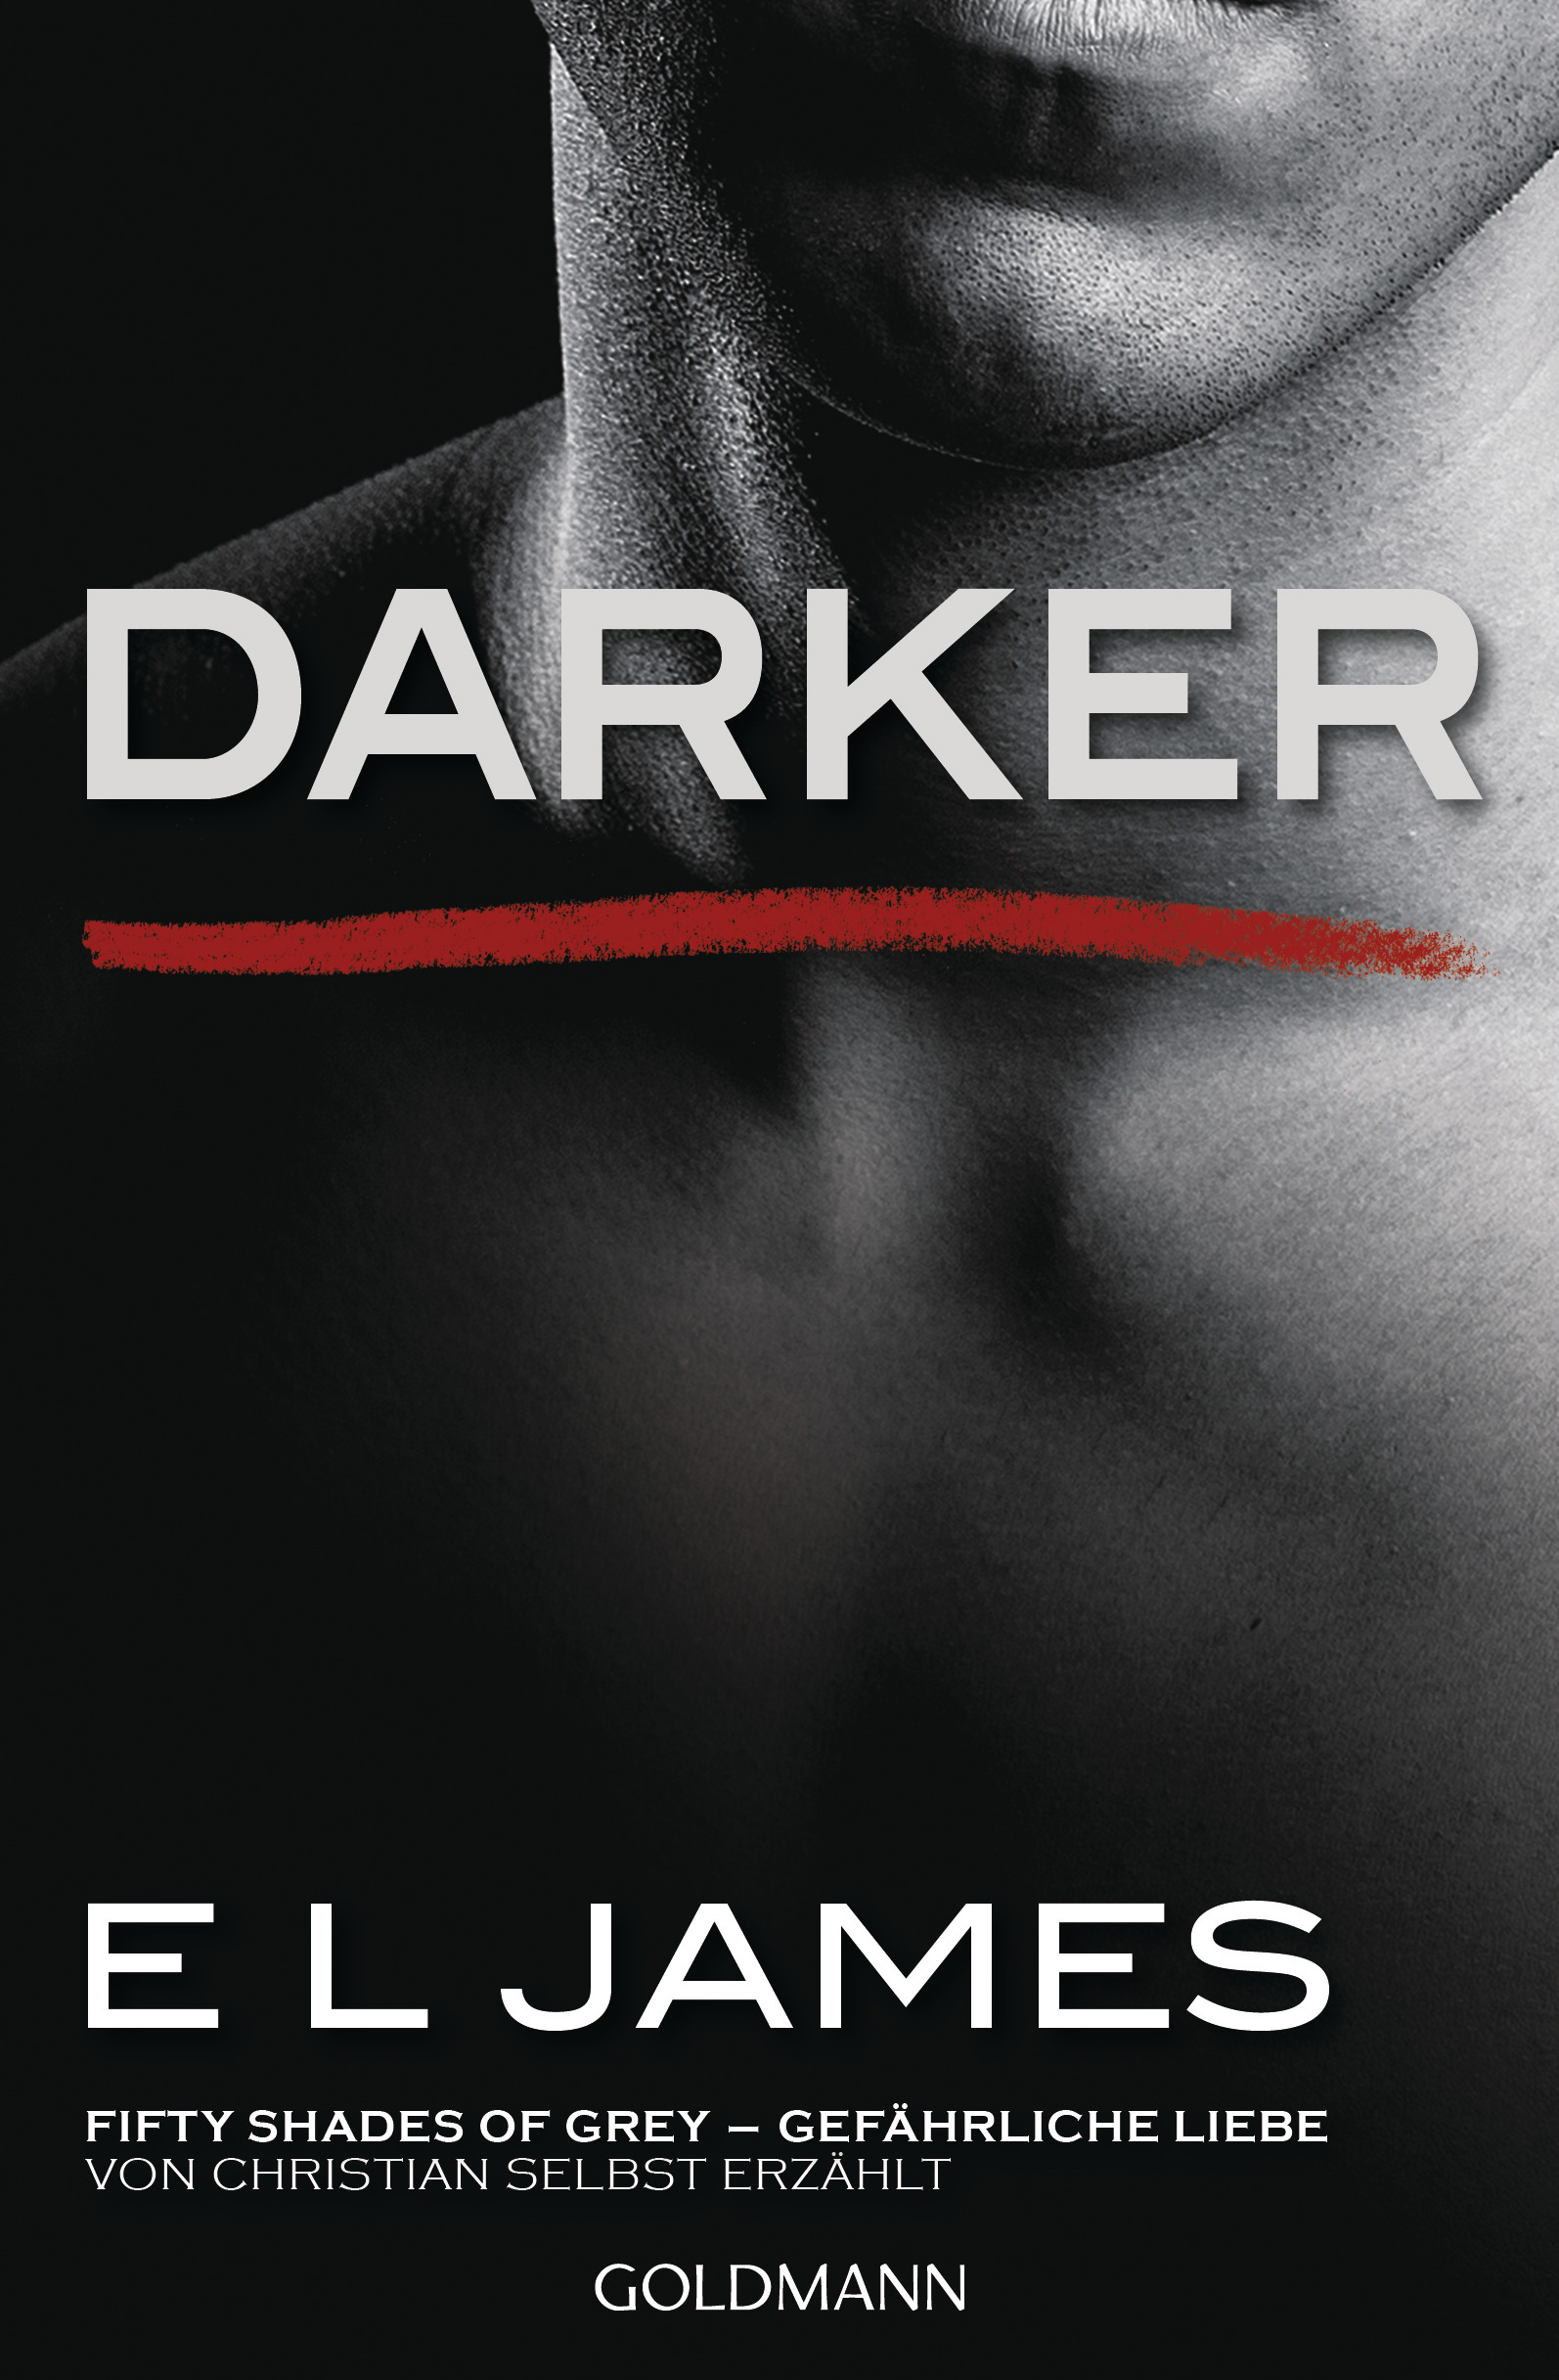 fifty shades of darker epub